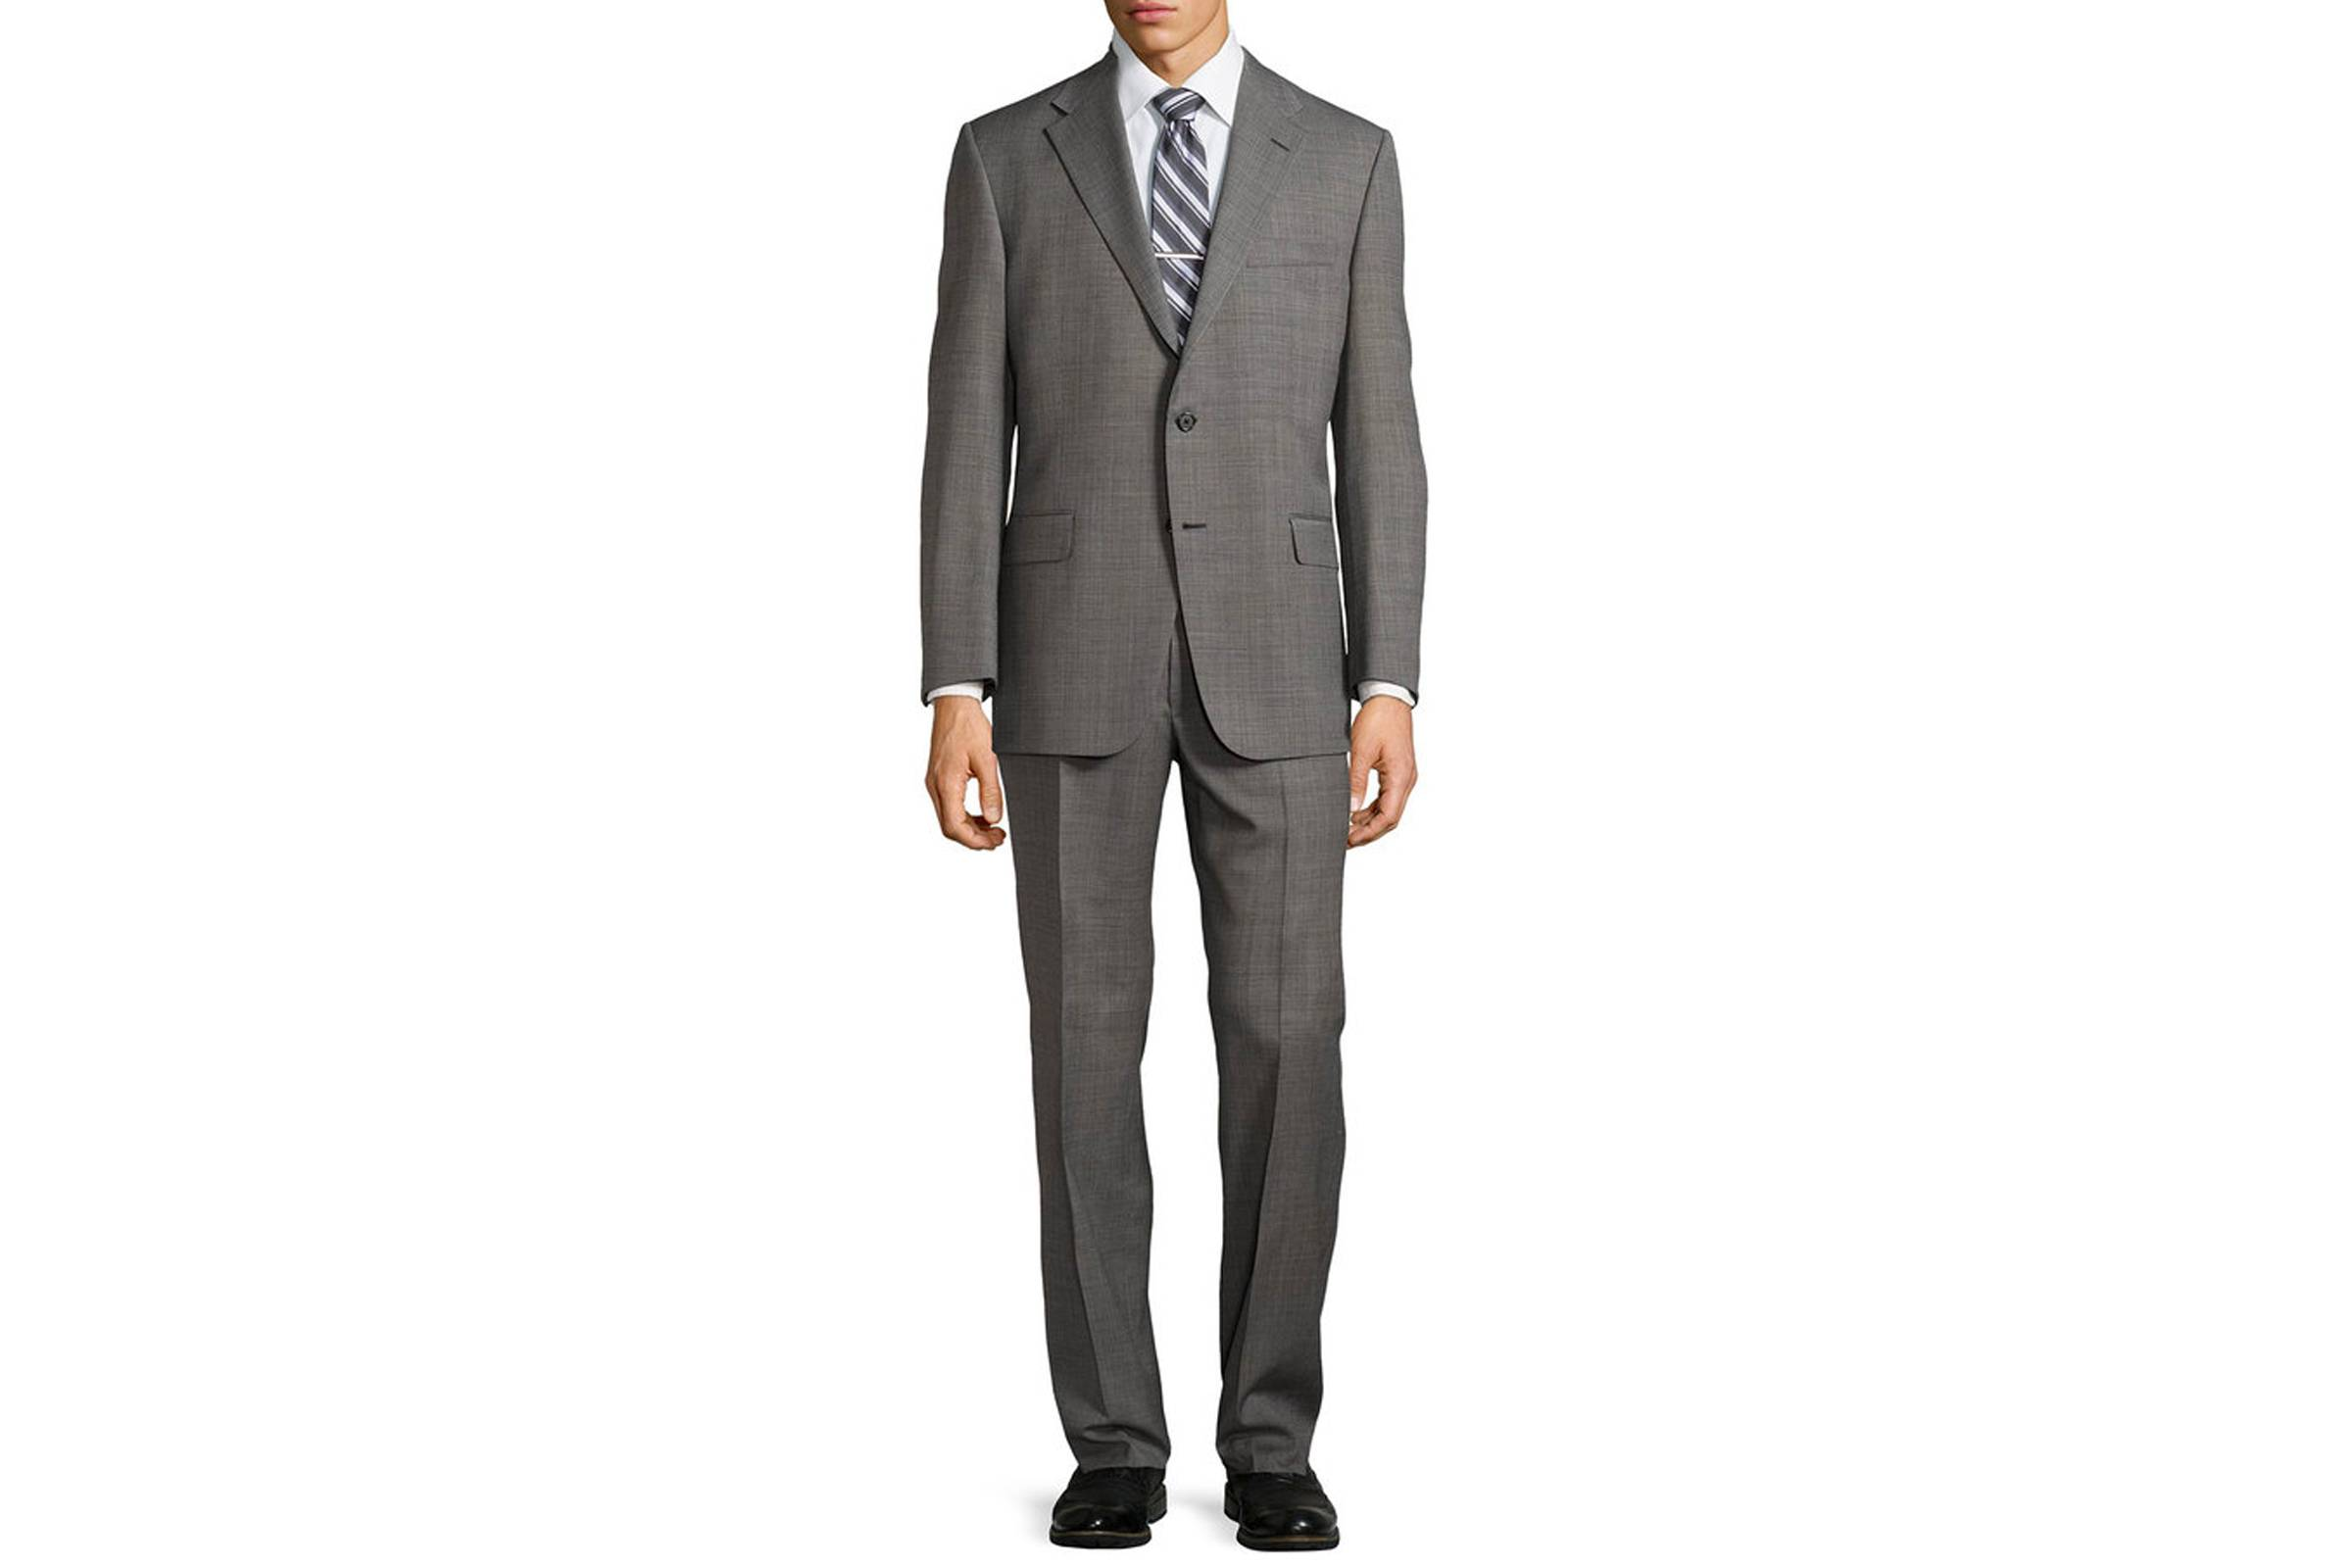 Types of Suits: Charcoal Single-Breasted Suit - Worsted Wool